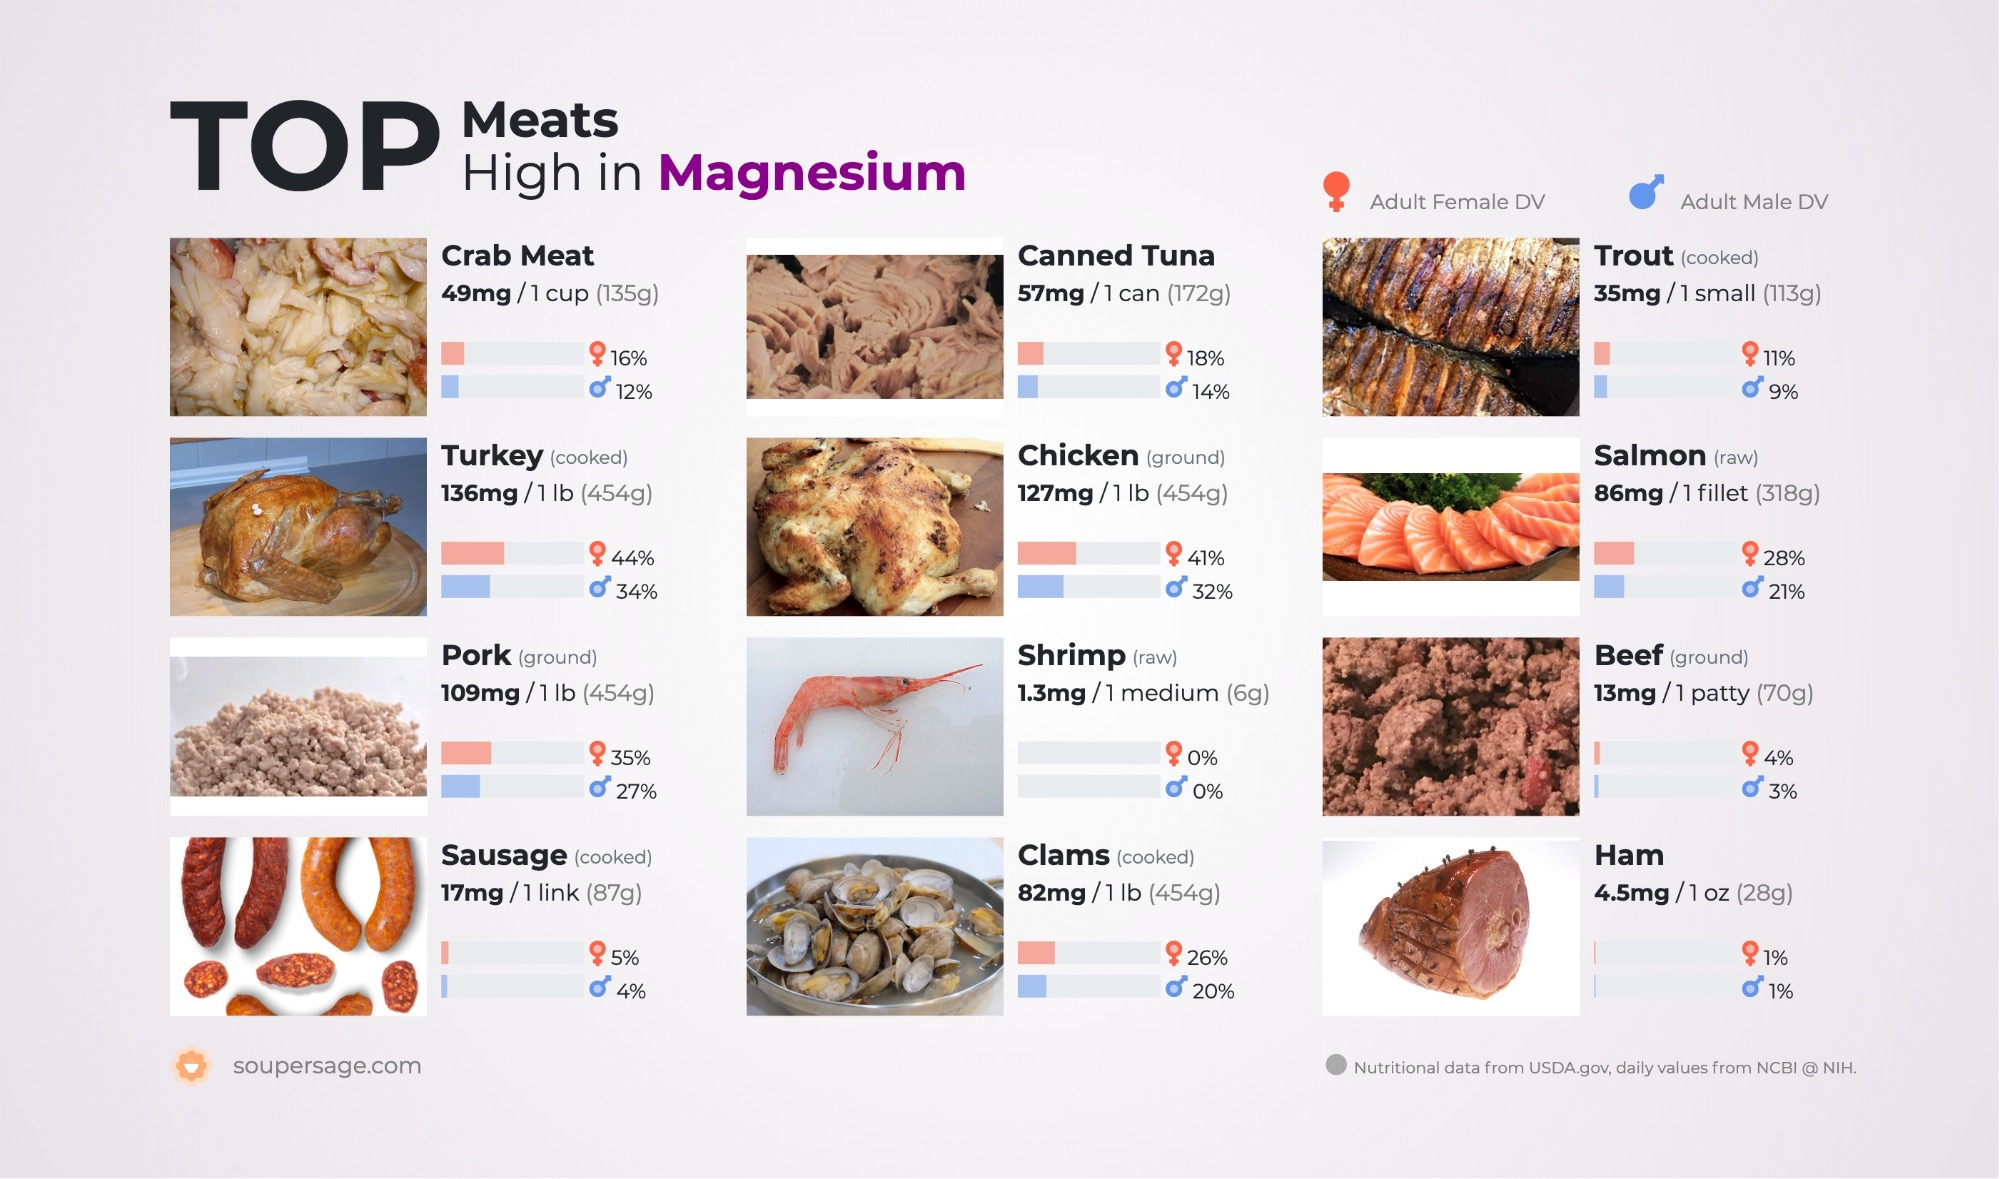 image of Top Meats High in Magnesium